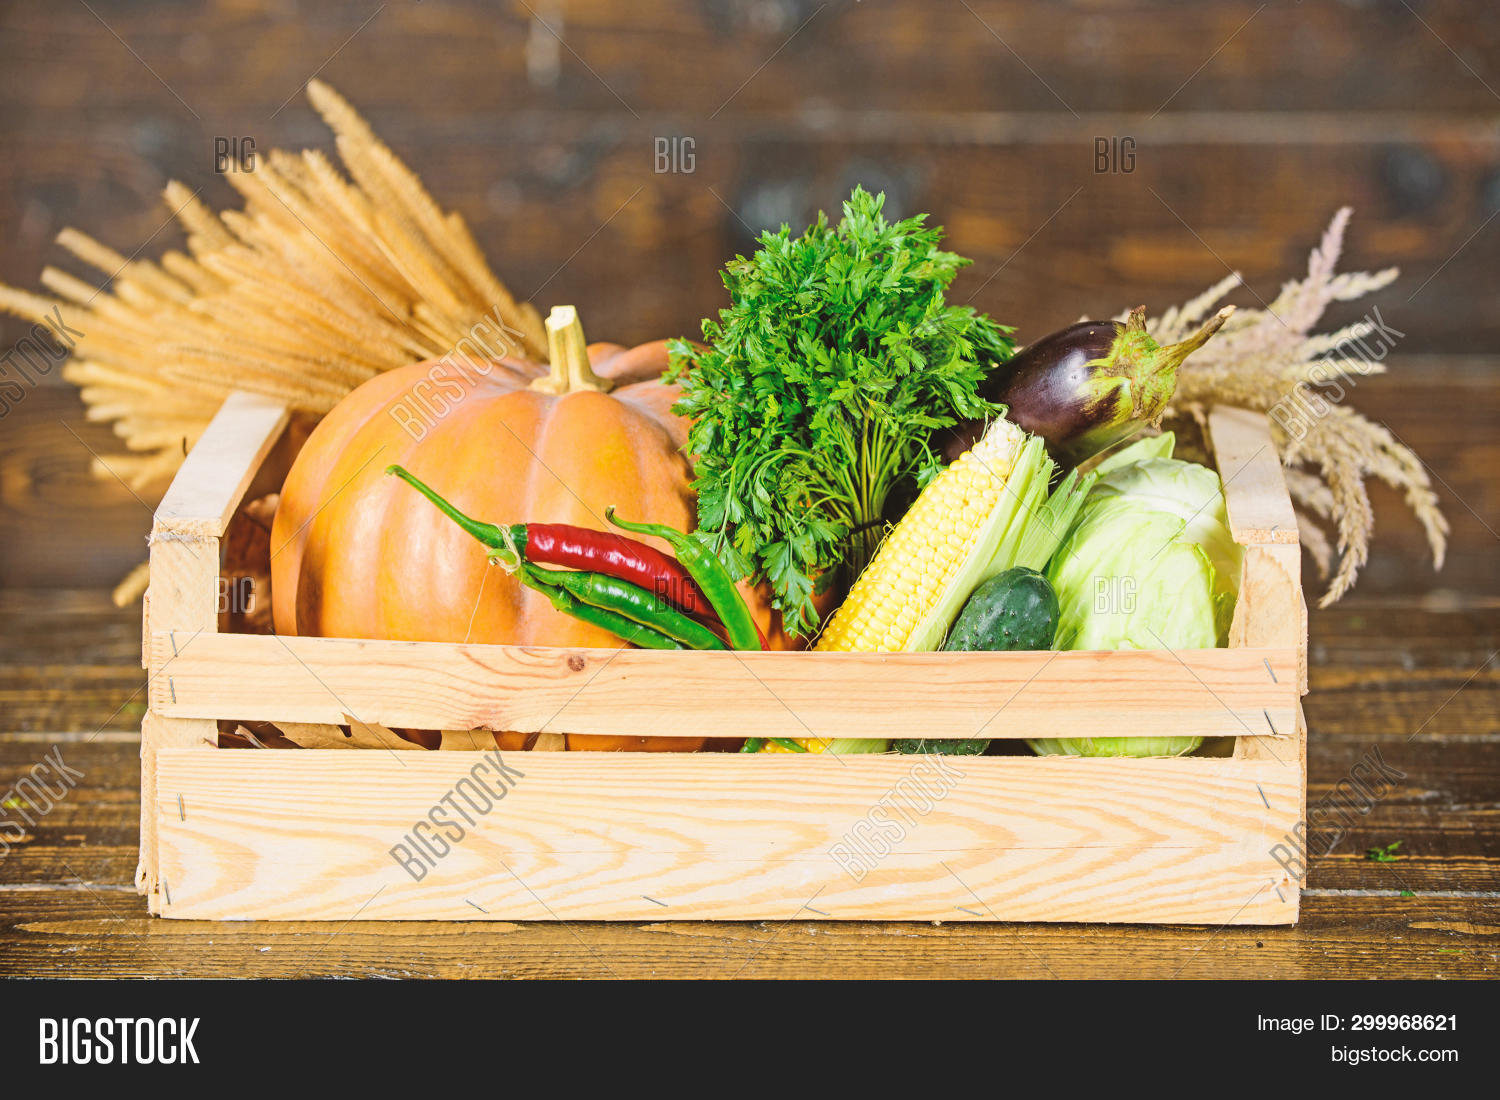 Delivery Service Fresh Image & Photo (Free Trial) | Bigstock